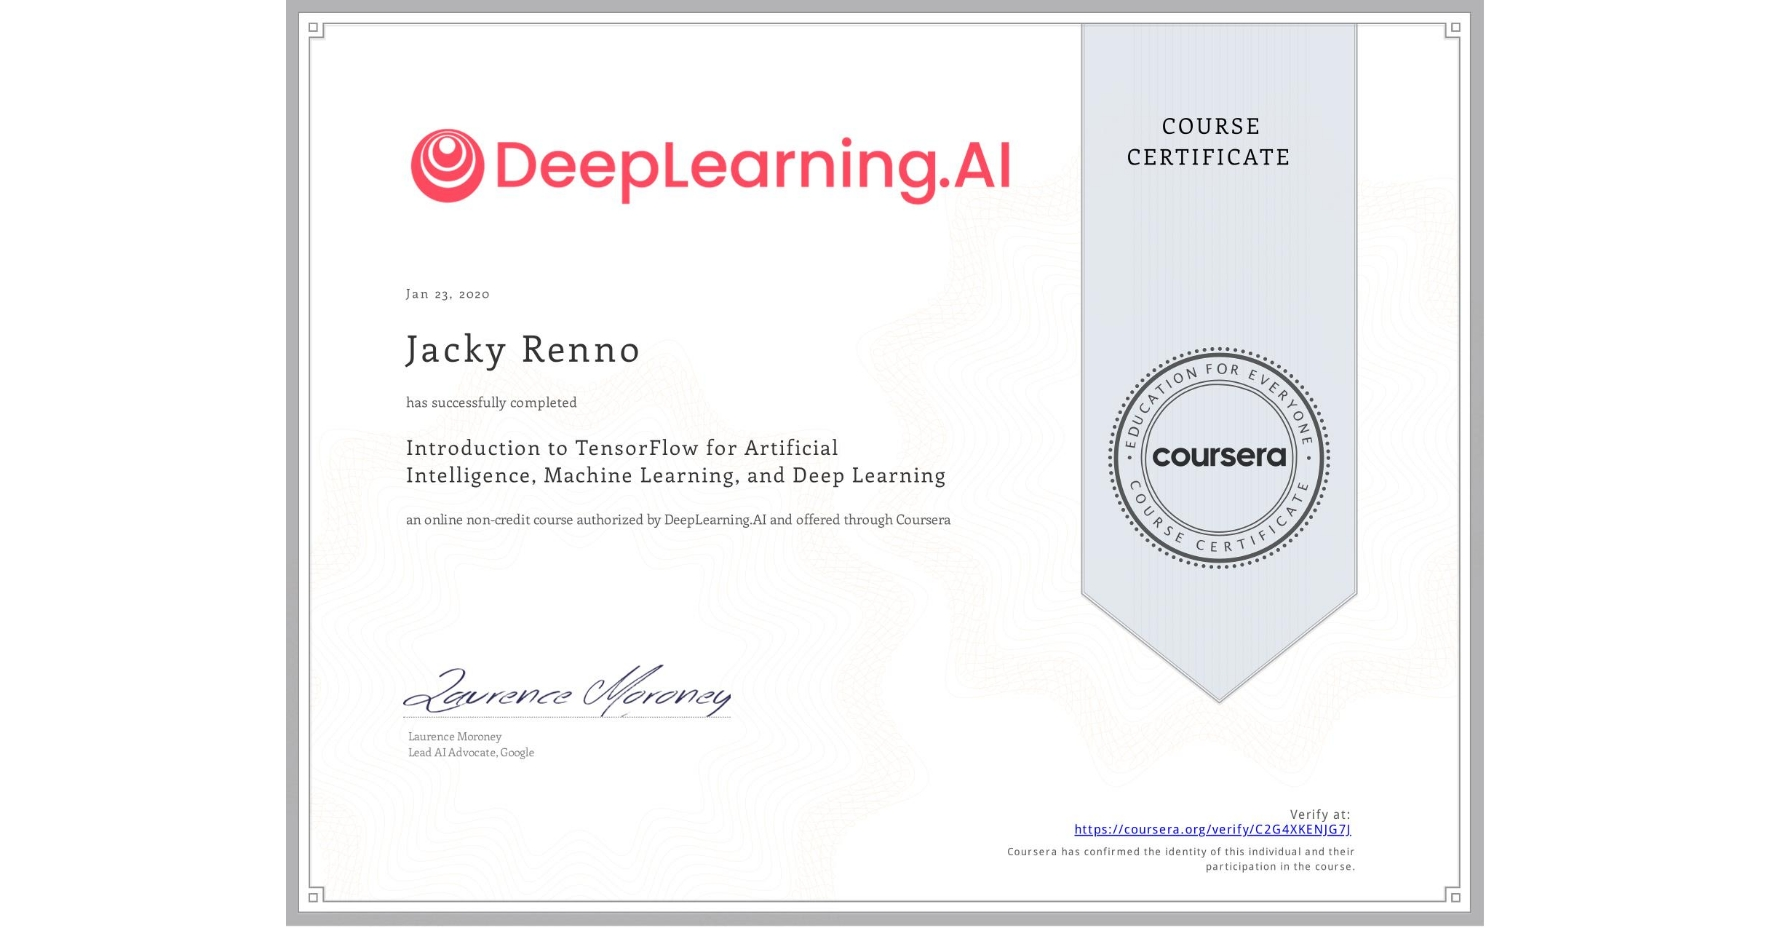 View certificate for Jacky Renno, Introduction to TensorFlow for Artificial Intelligence, Machine Learning, and Deep Learning, an online non-credit course authorized by DeepLearning.AI and offered through Coursera